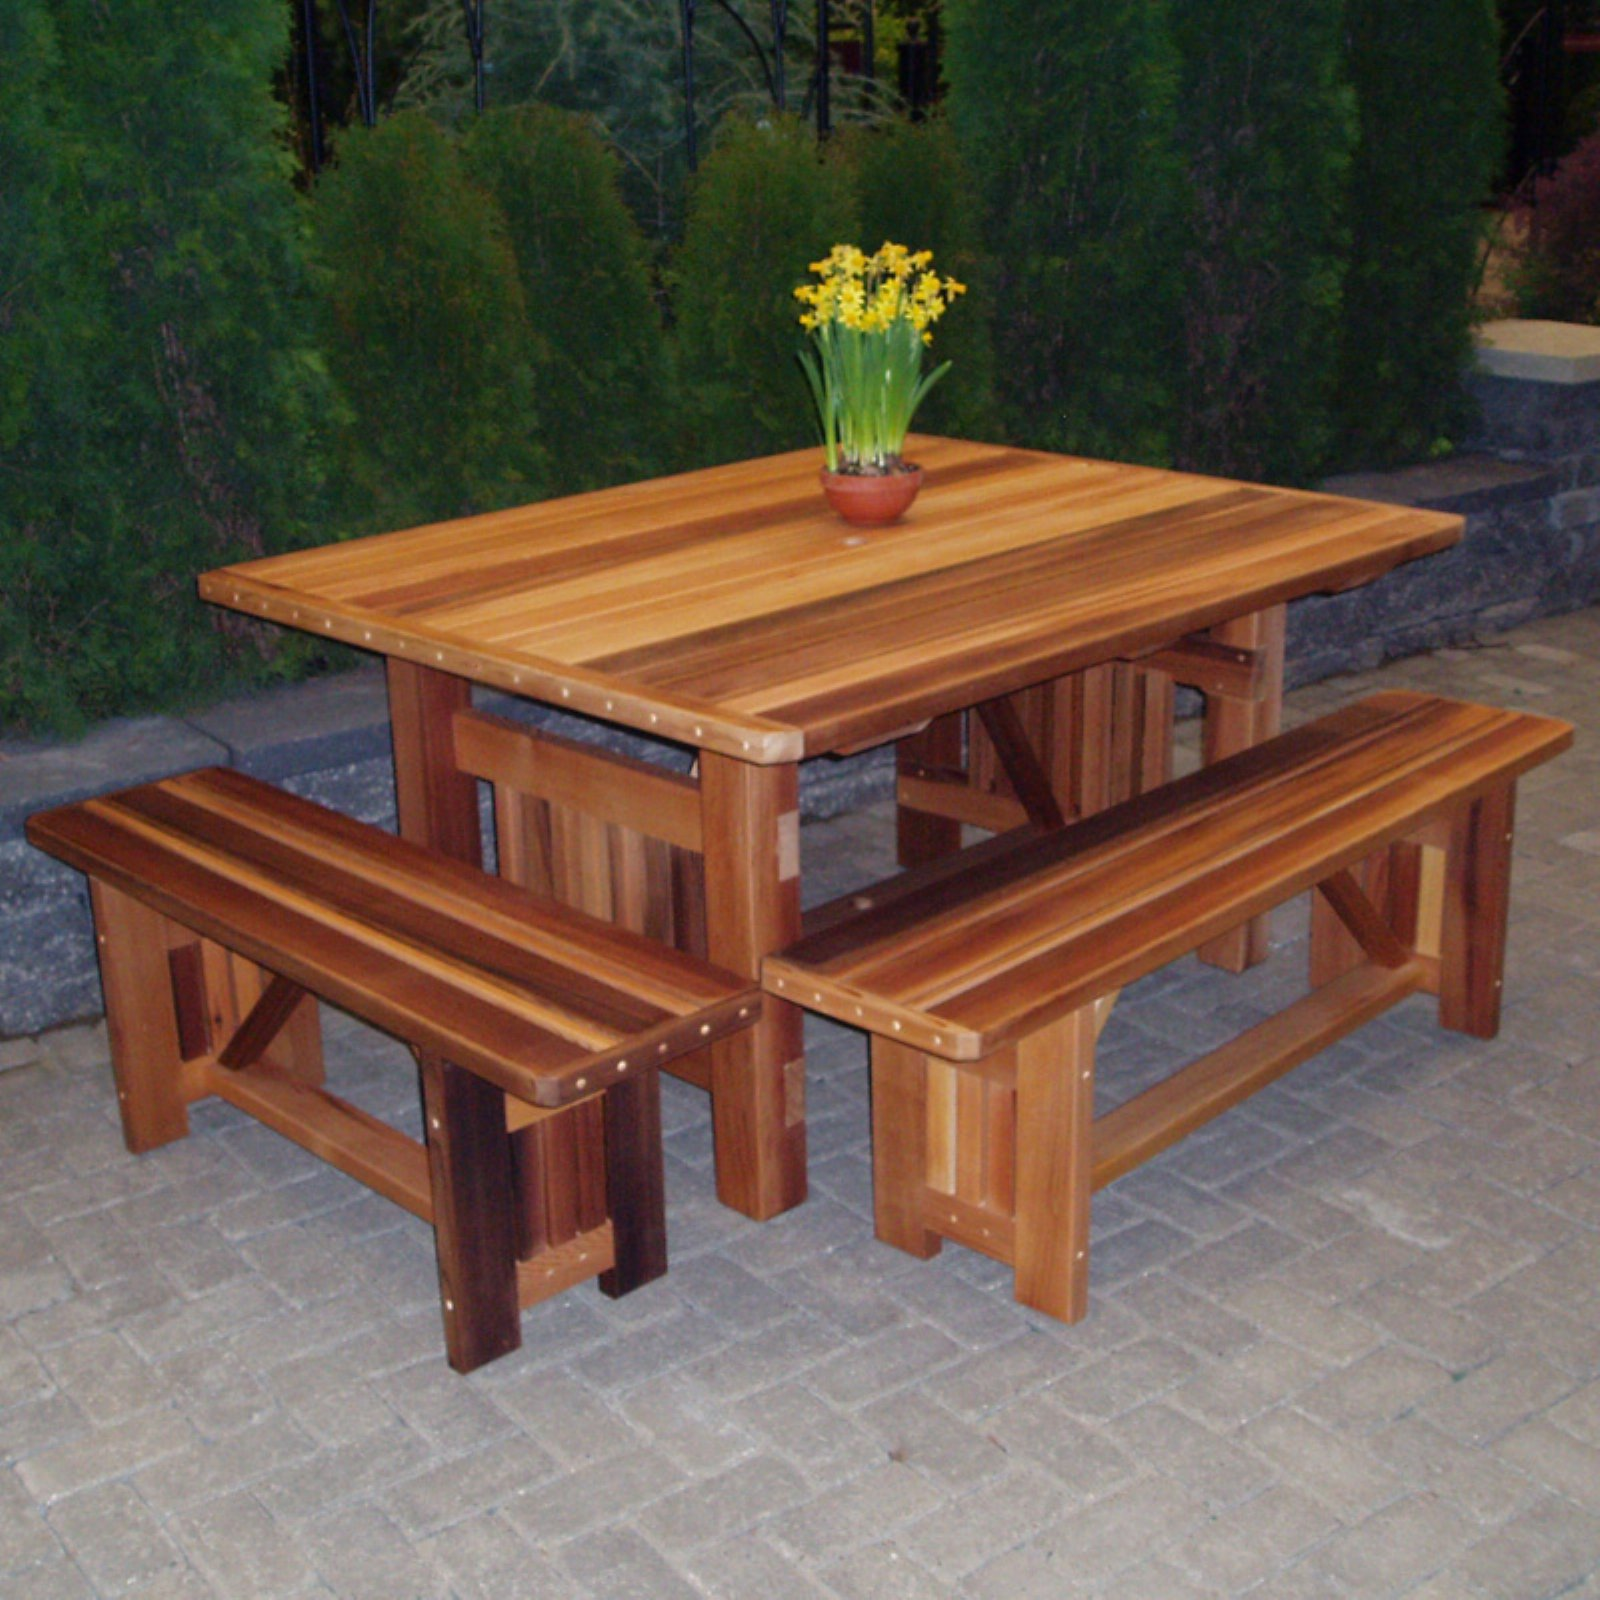 wood country cabbage hill 5 ft rectangle cedar patio table